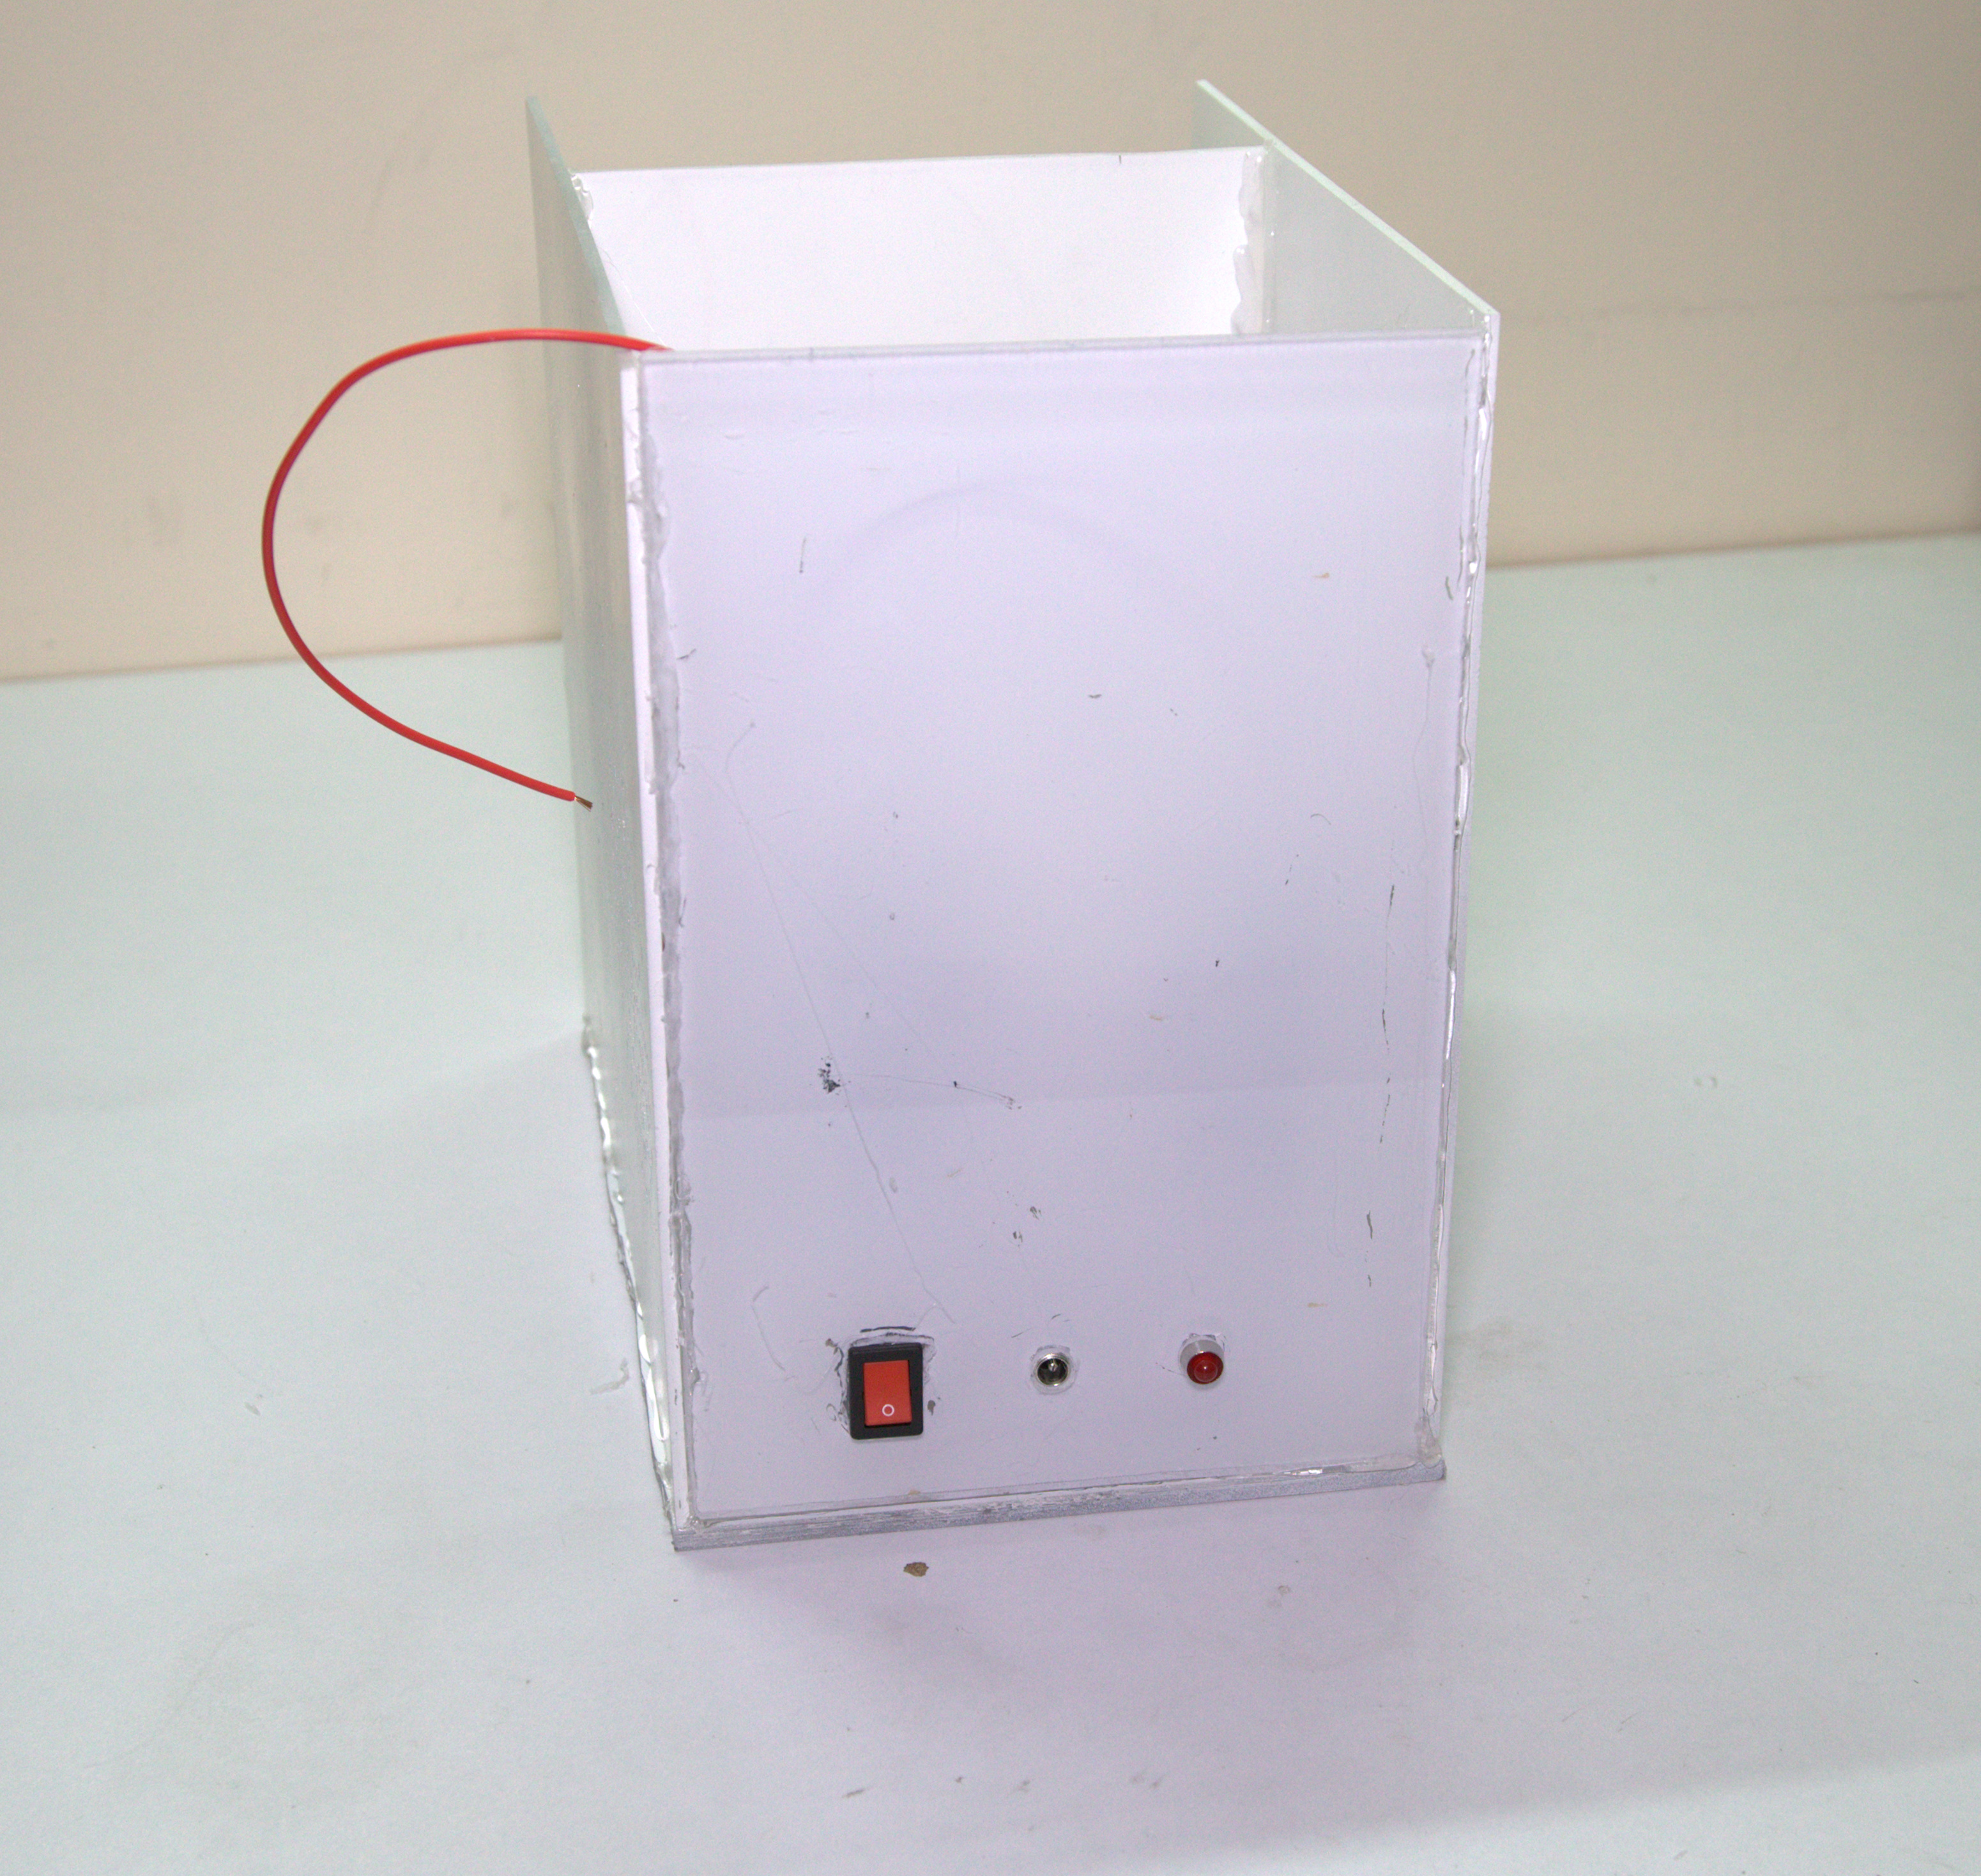 Picture of Make Compartment for Electronics Circuits